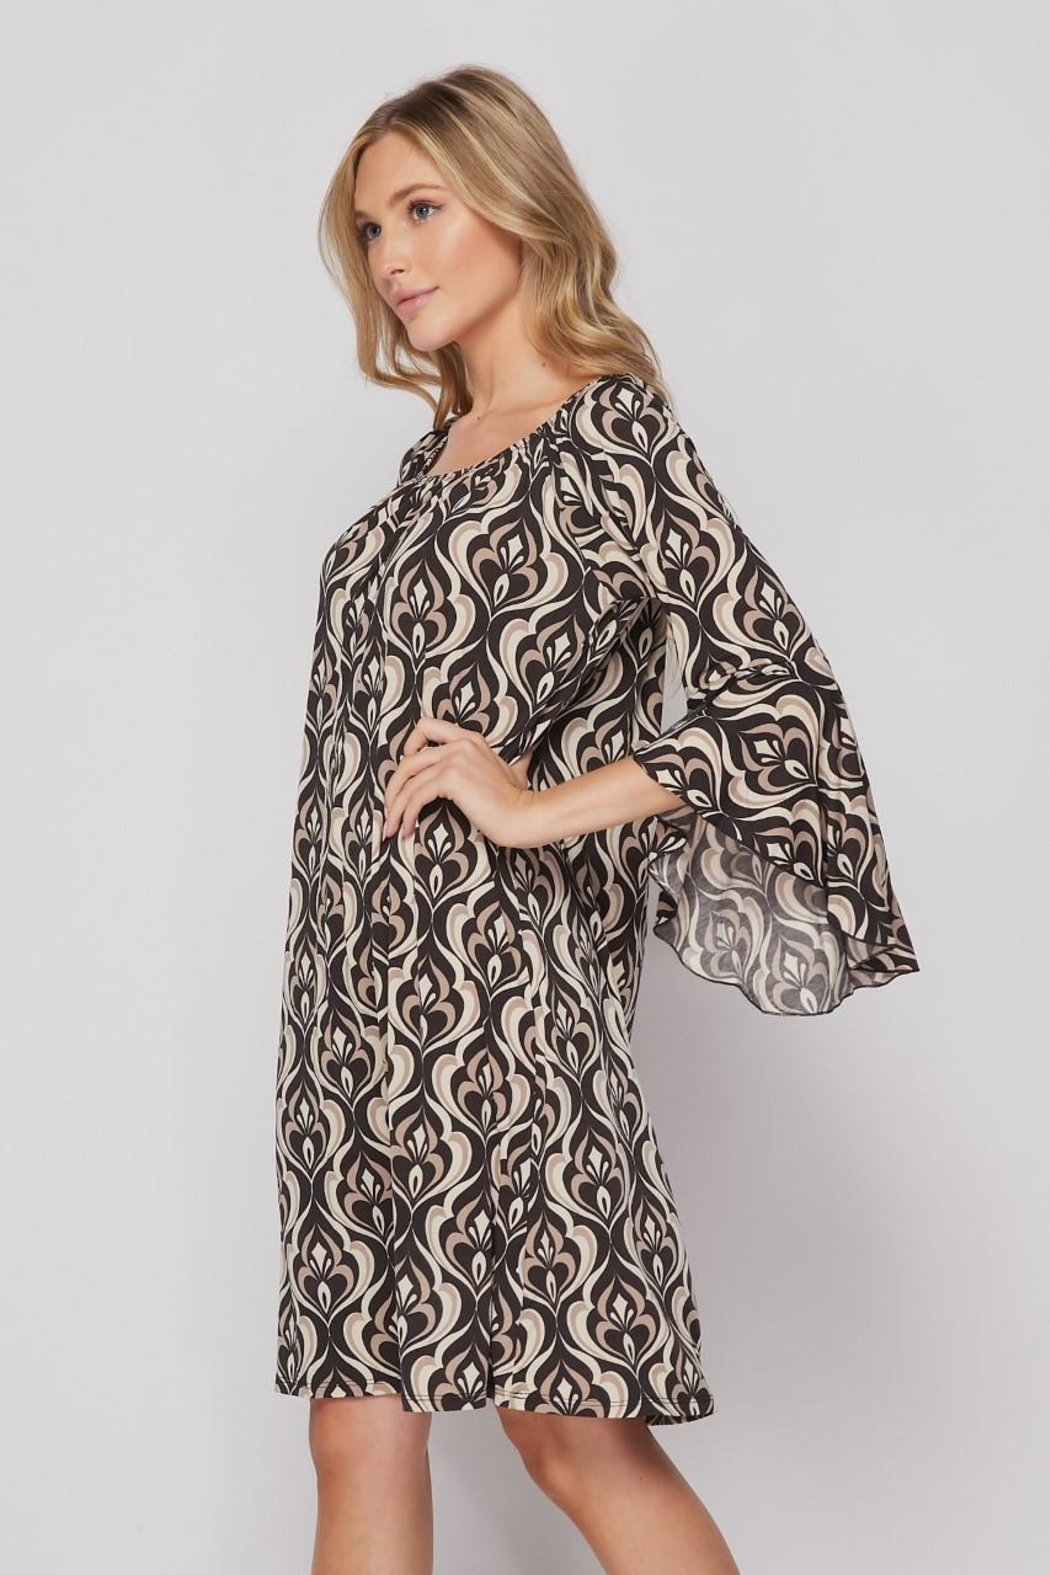 Elegance by Sarah Ruhs Bulgari Print Dress - Main Image